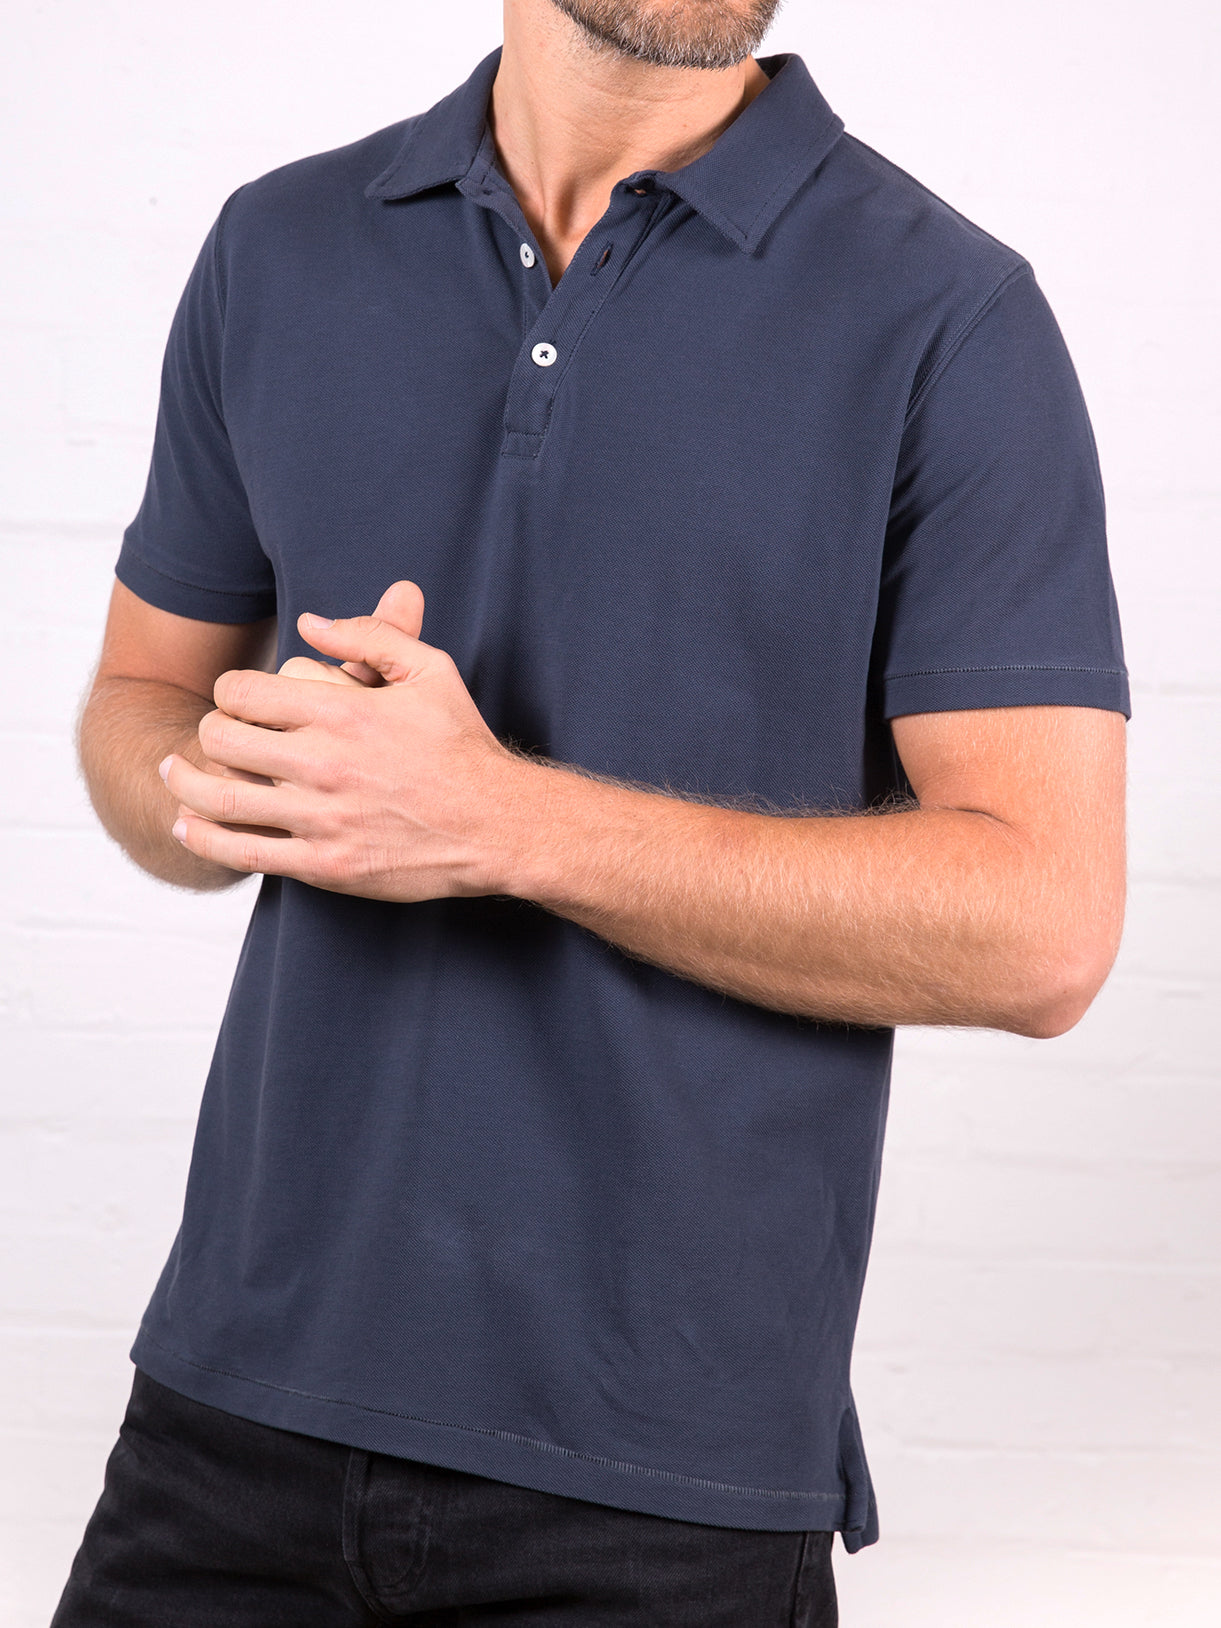 Men's Polo Shirt Navy